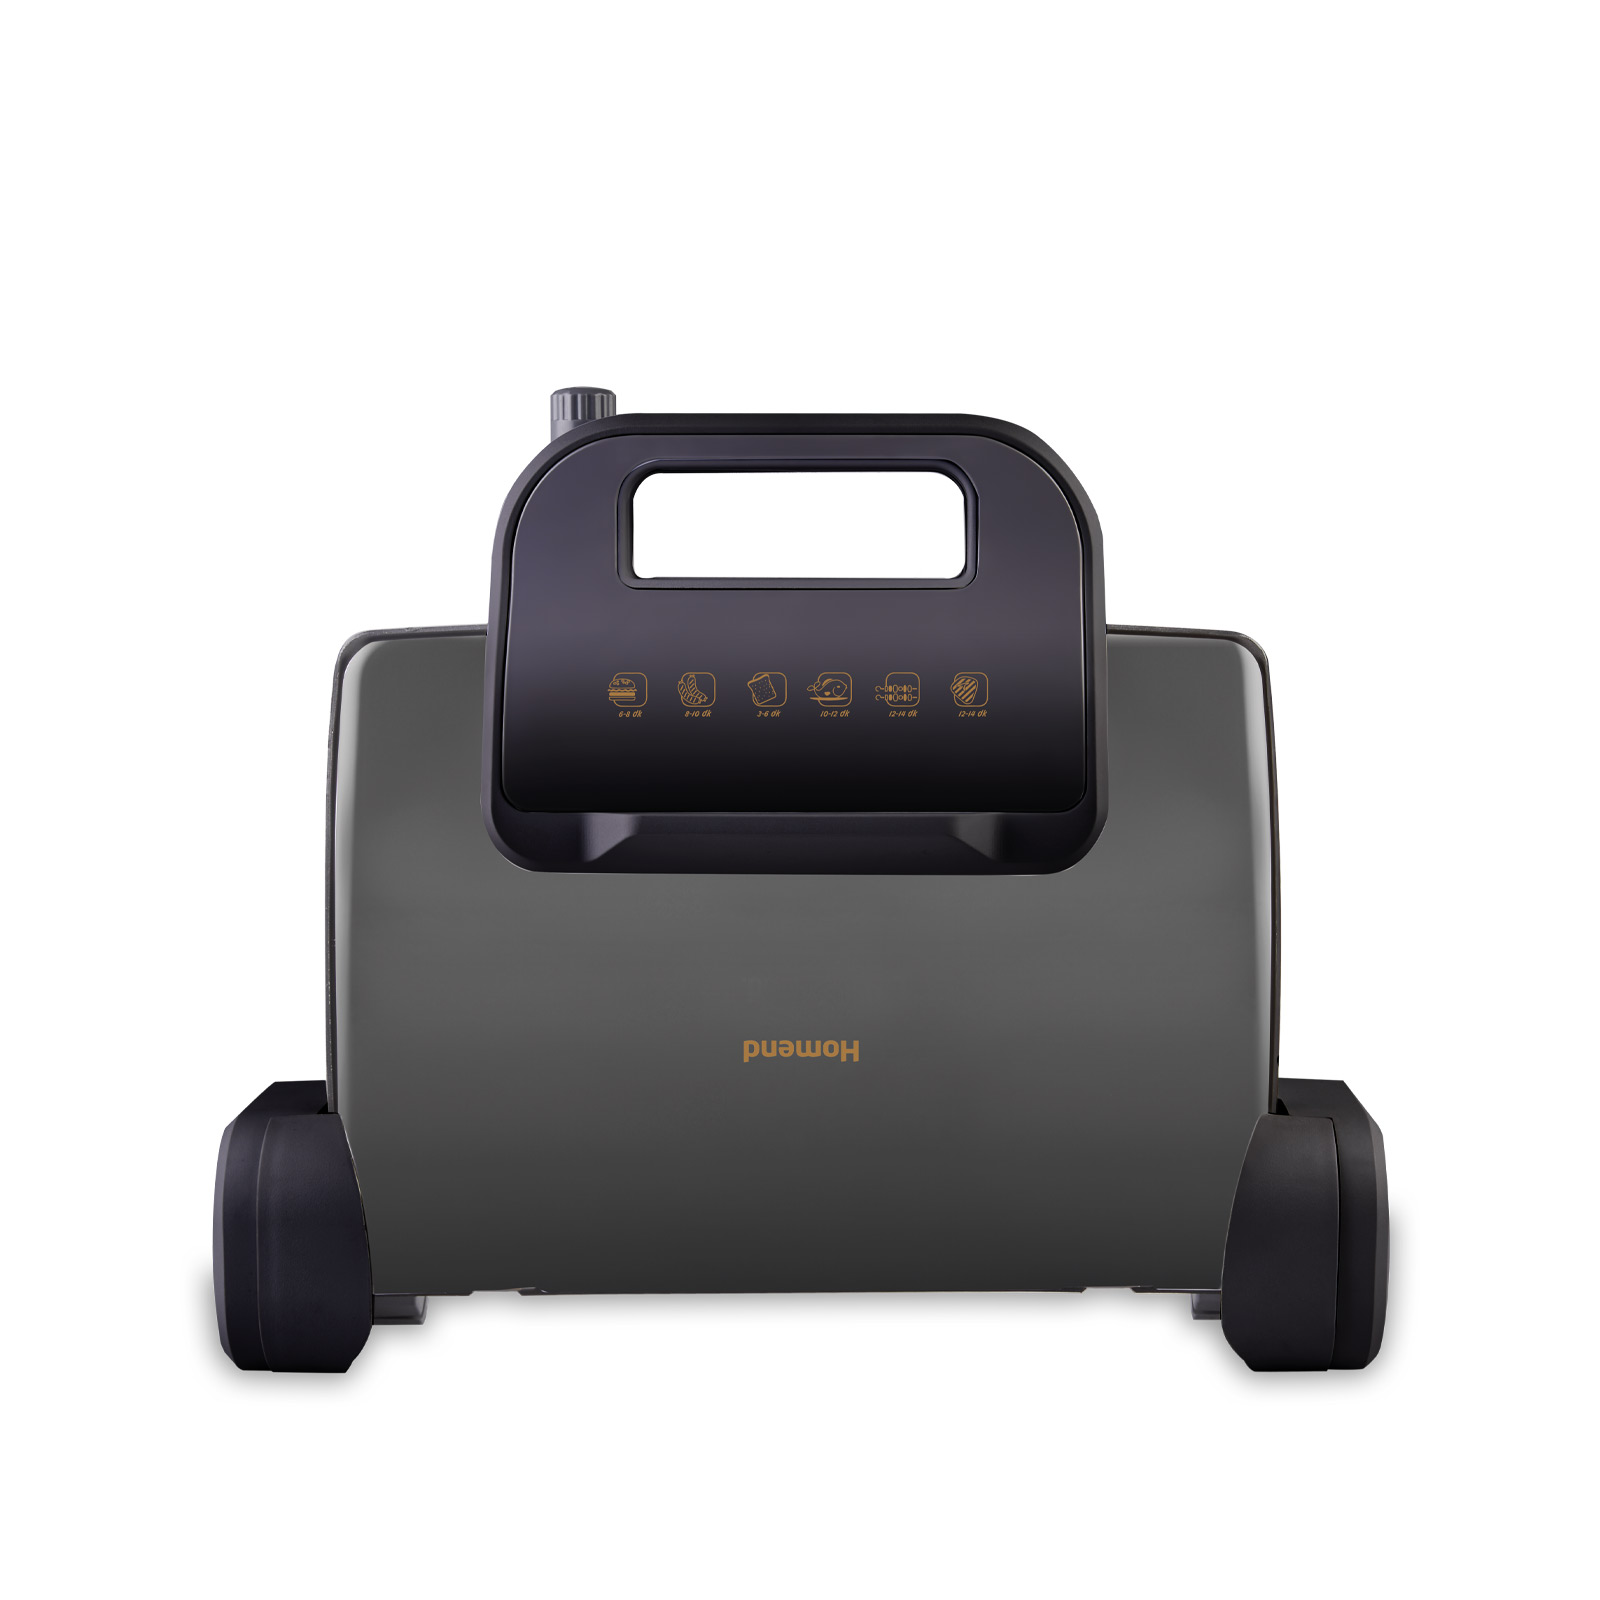 Homend Toastbuster 1362h Tost Makinesi Antrasit Gold